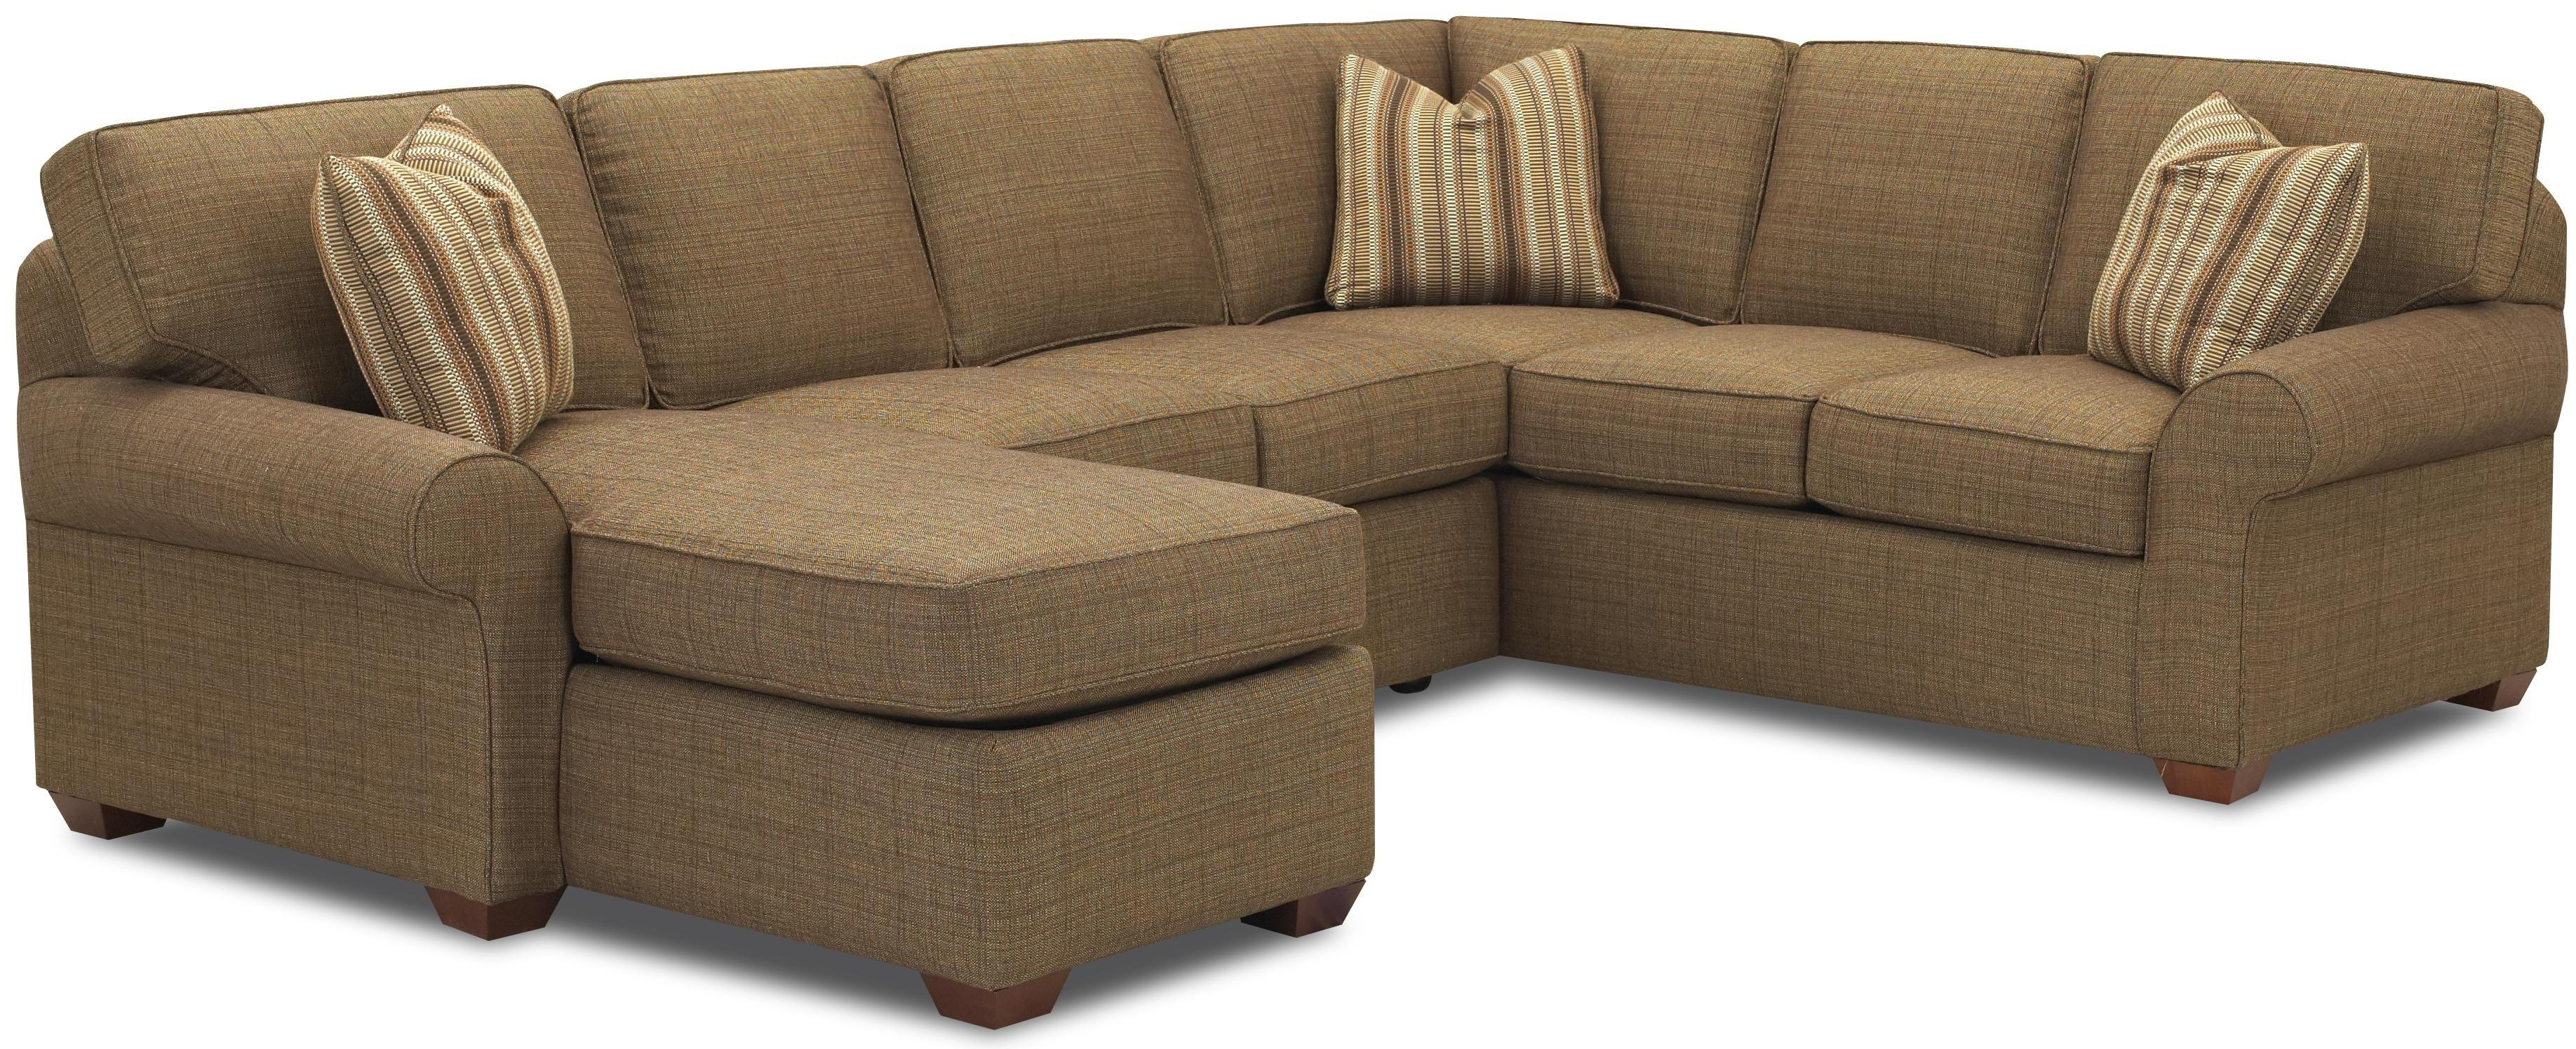 Klaussner Chaise Lounge Chairs Throughout Widely Used Klaussner Patterns Sectional Sofa Group With Right Chaise Lounge (View 4 of 15)